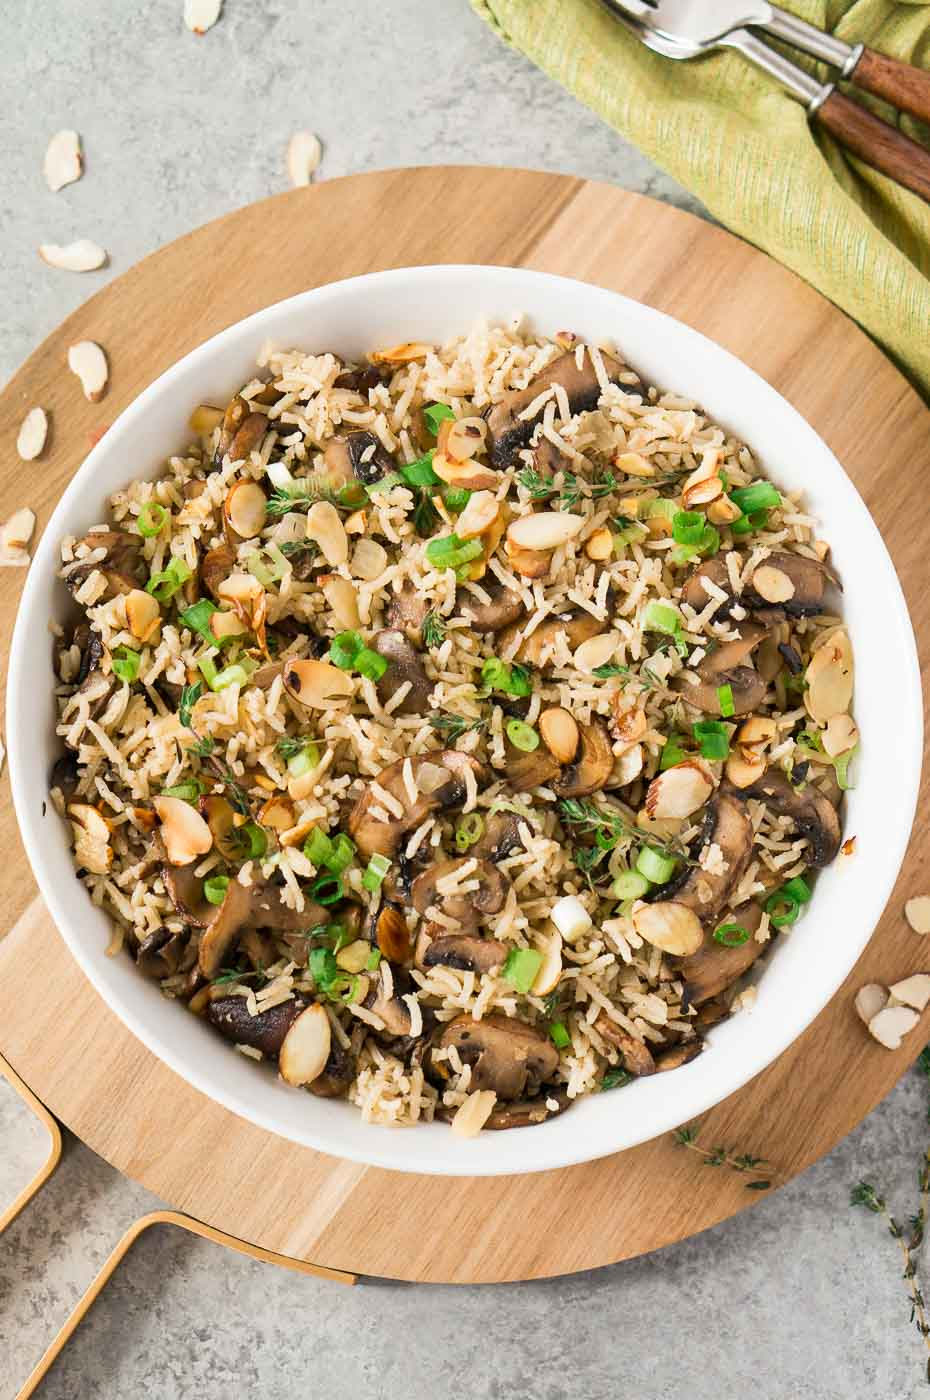 vegetarian side dish made with rice and mushrooms